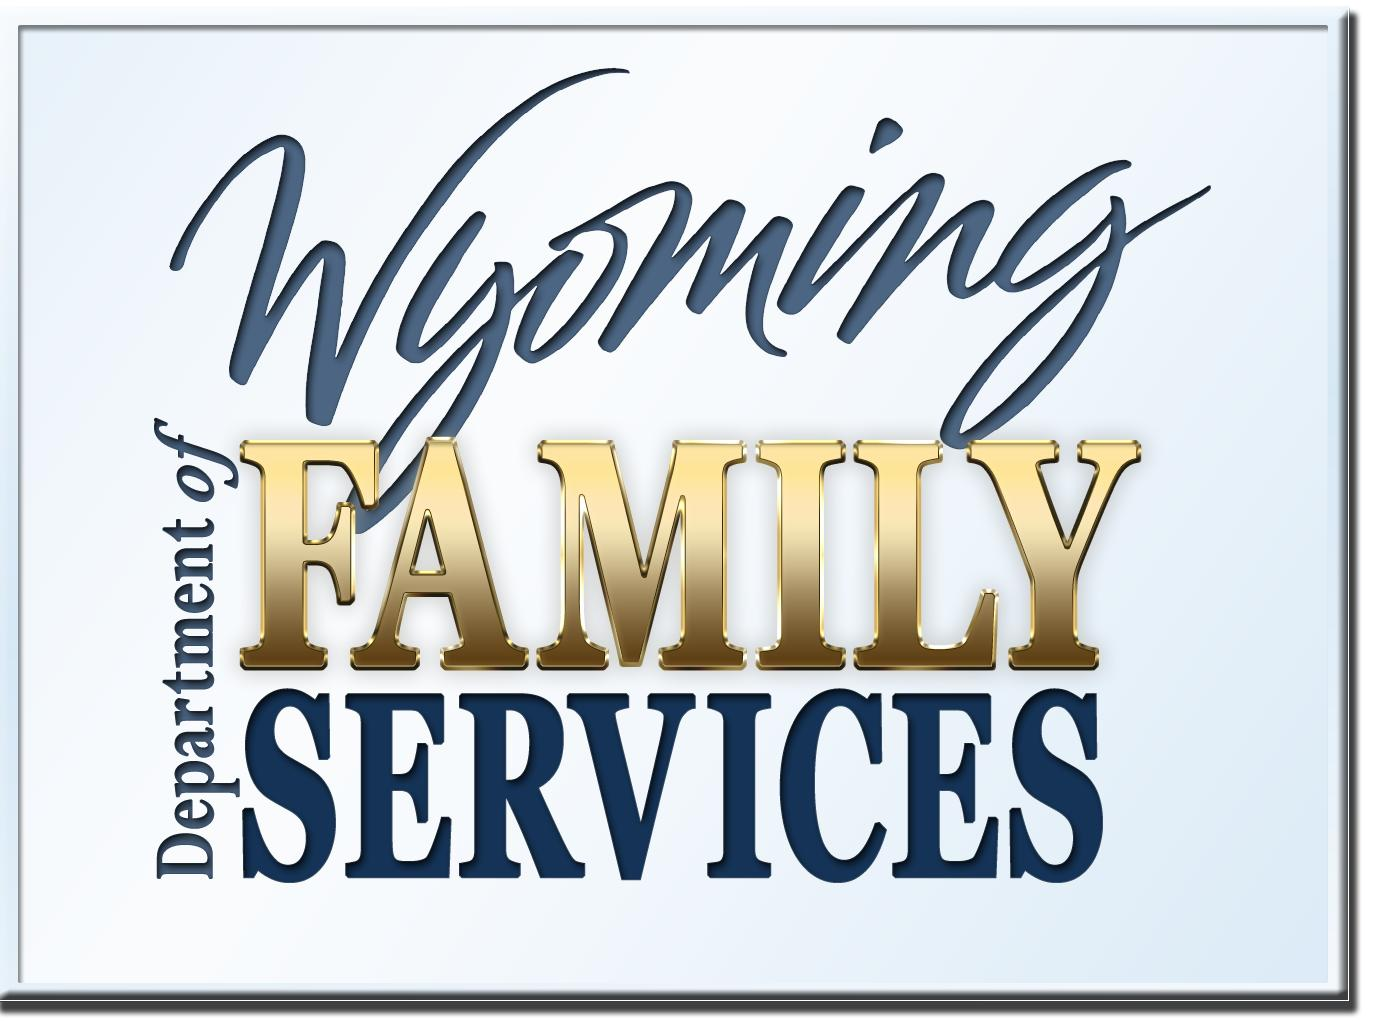 Wyoming Dept. of Family Services   851 Werner Ct #200 Casper, WY 82601 307-473-3900   http://dfsweb.wyo.gov/